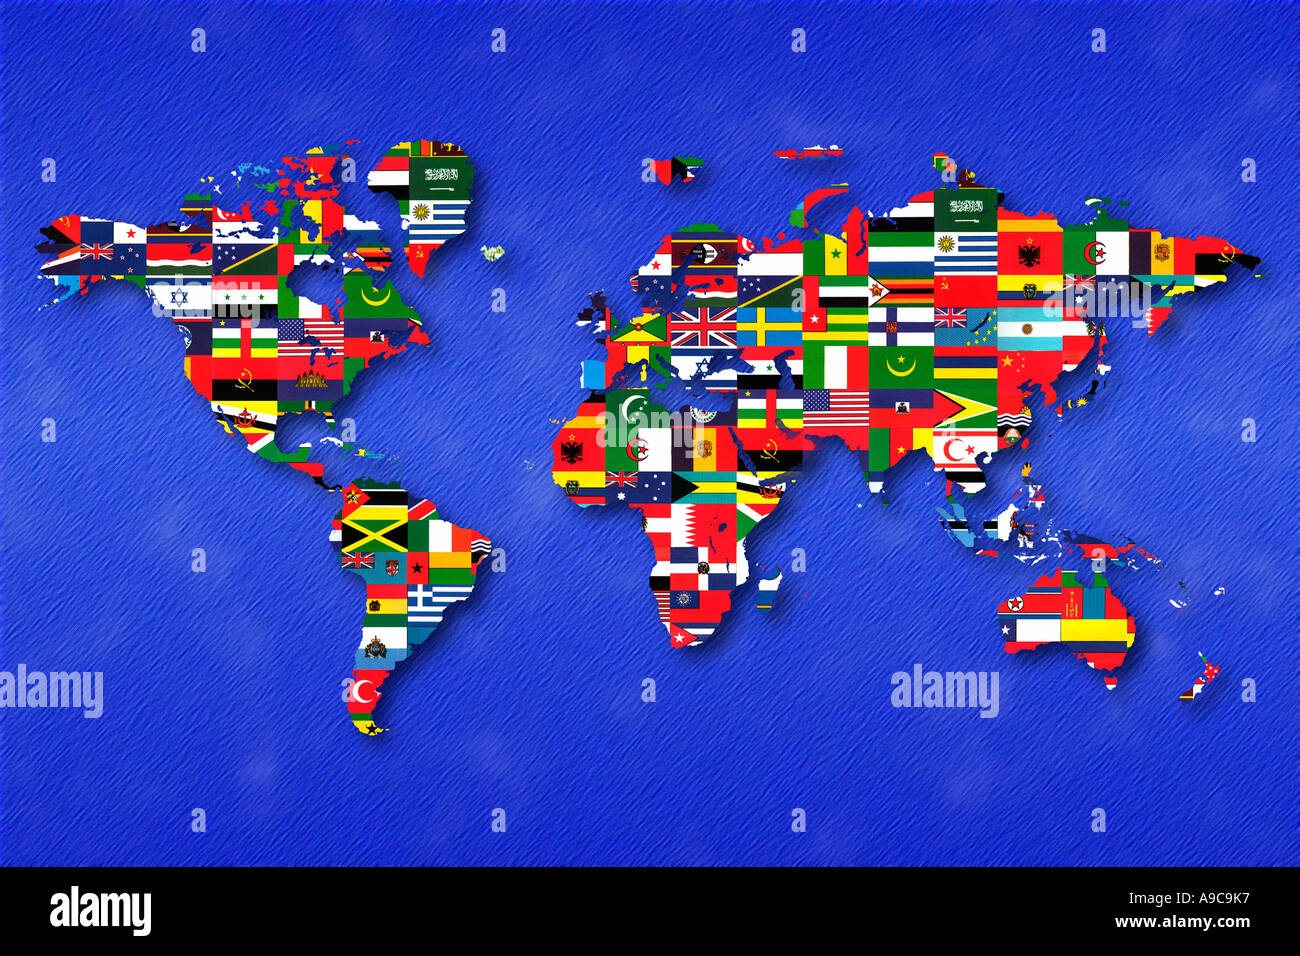 International Flags And World Map - Stock Image